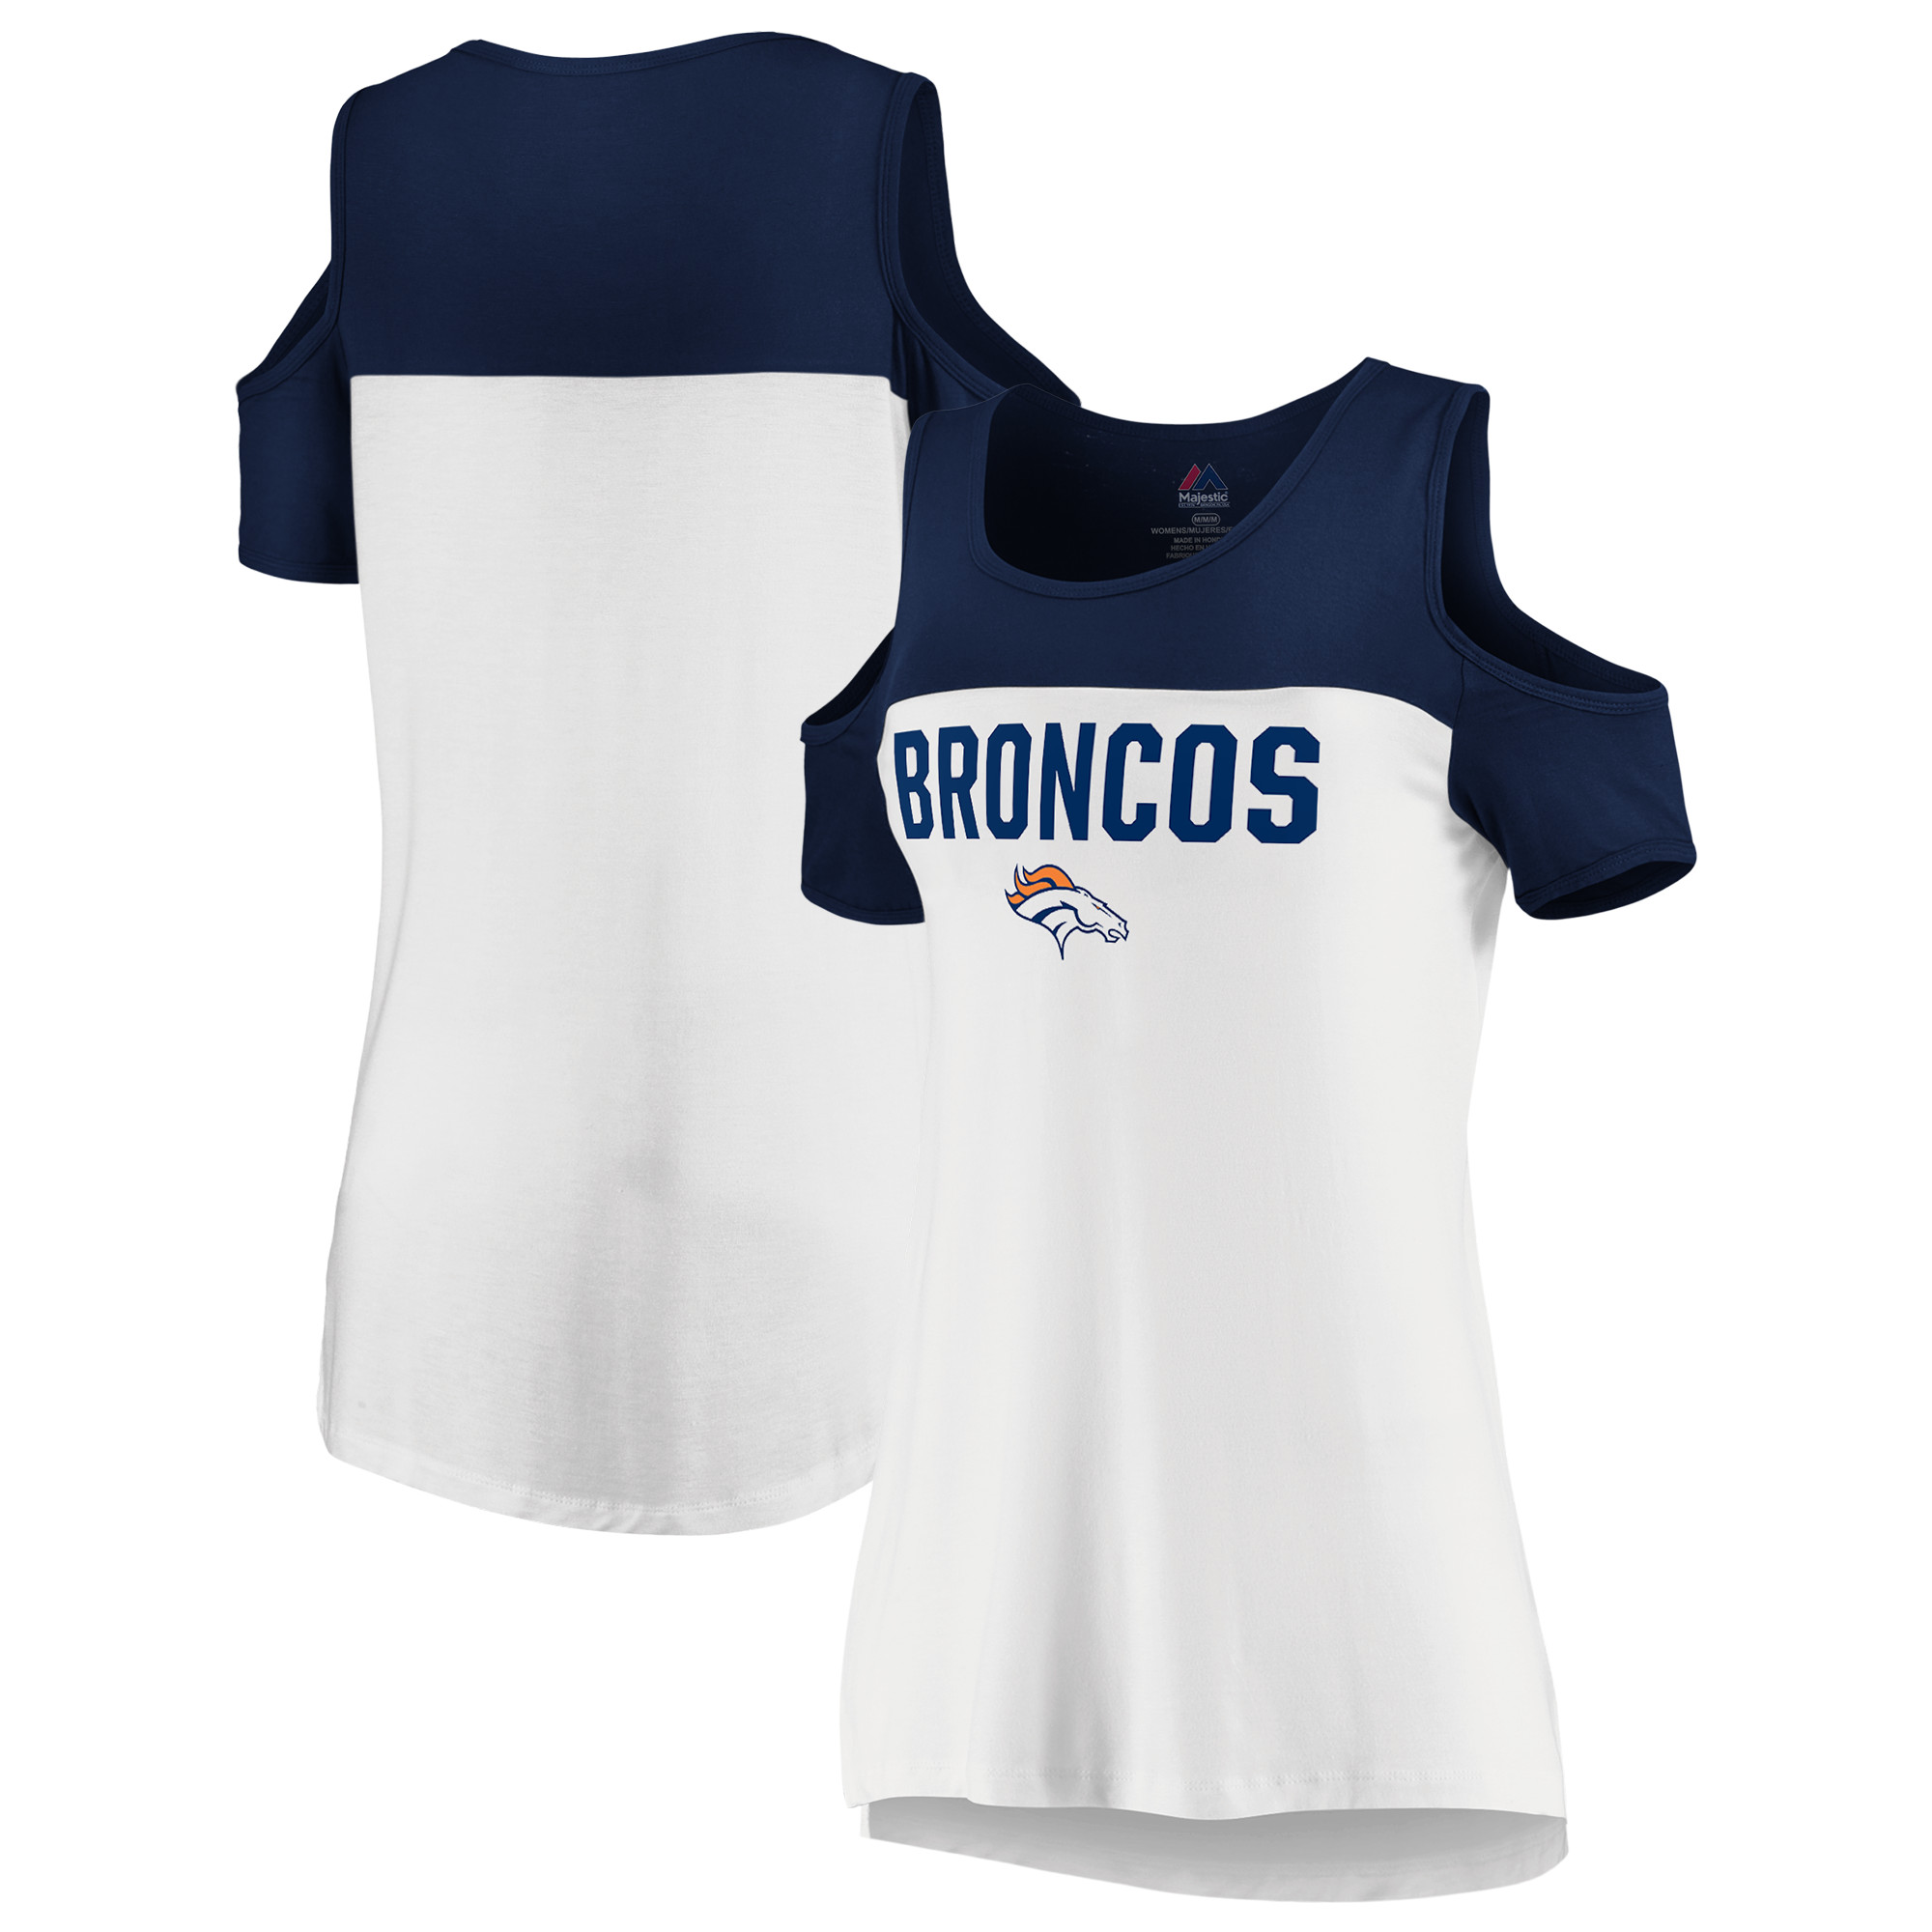 Denver Broncos Majestic Women's Pure Dedication Open Shoulder T-Shirt - White/Navy